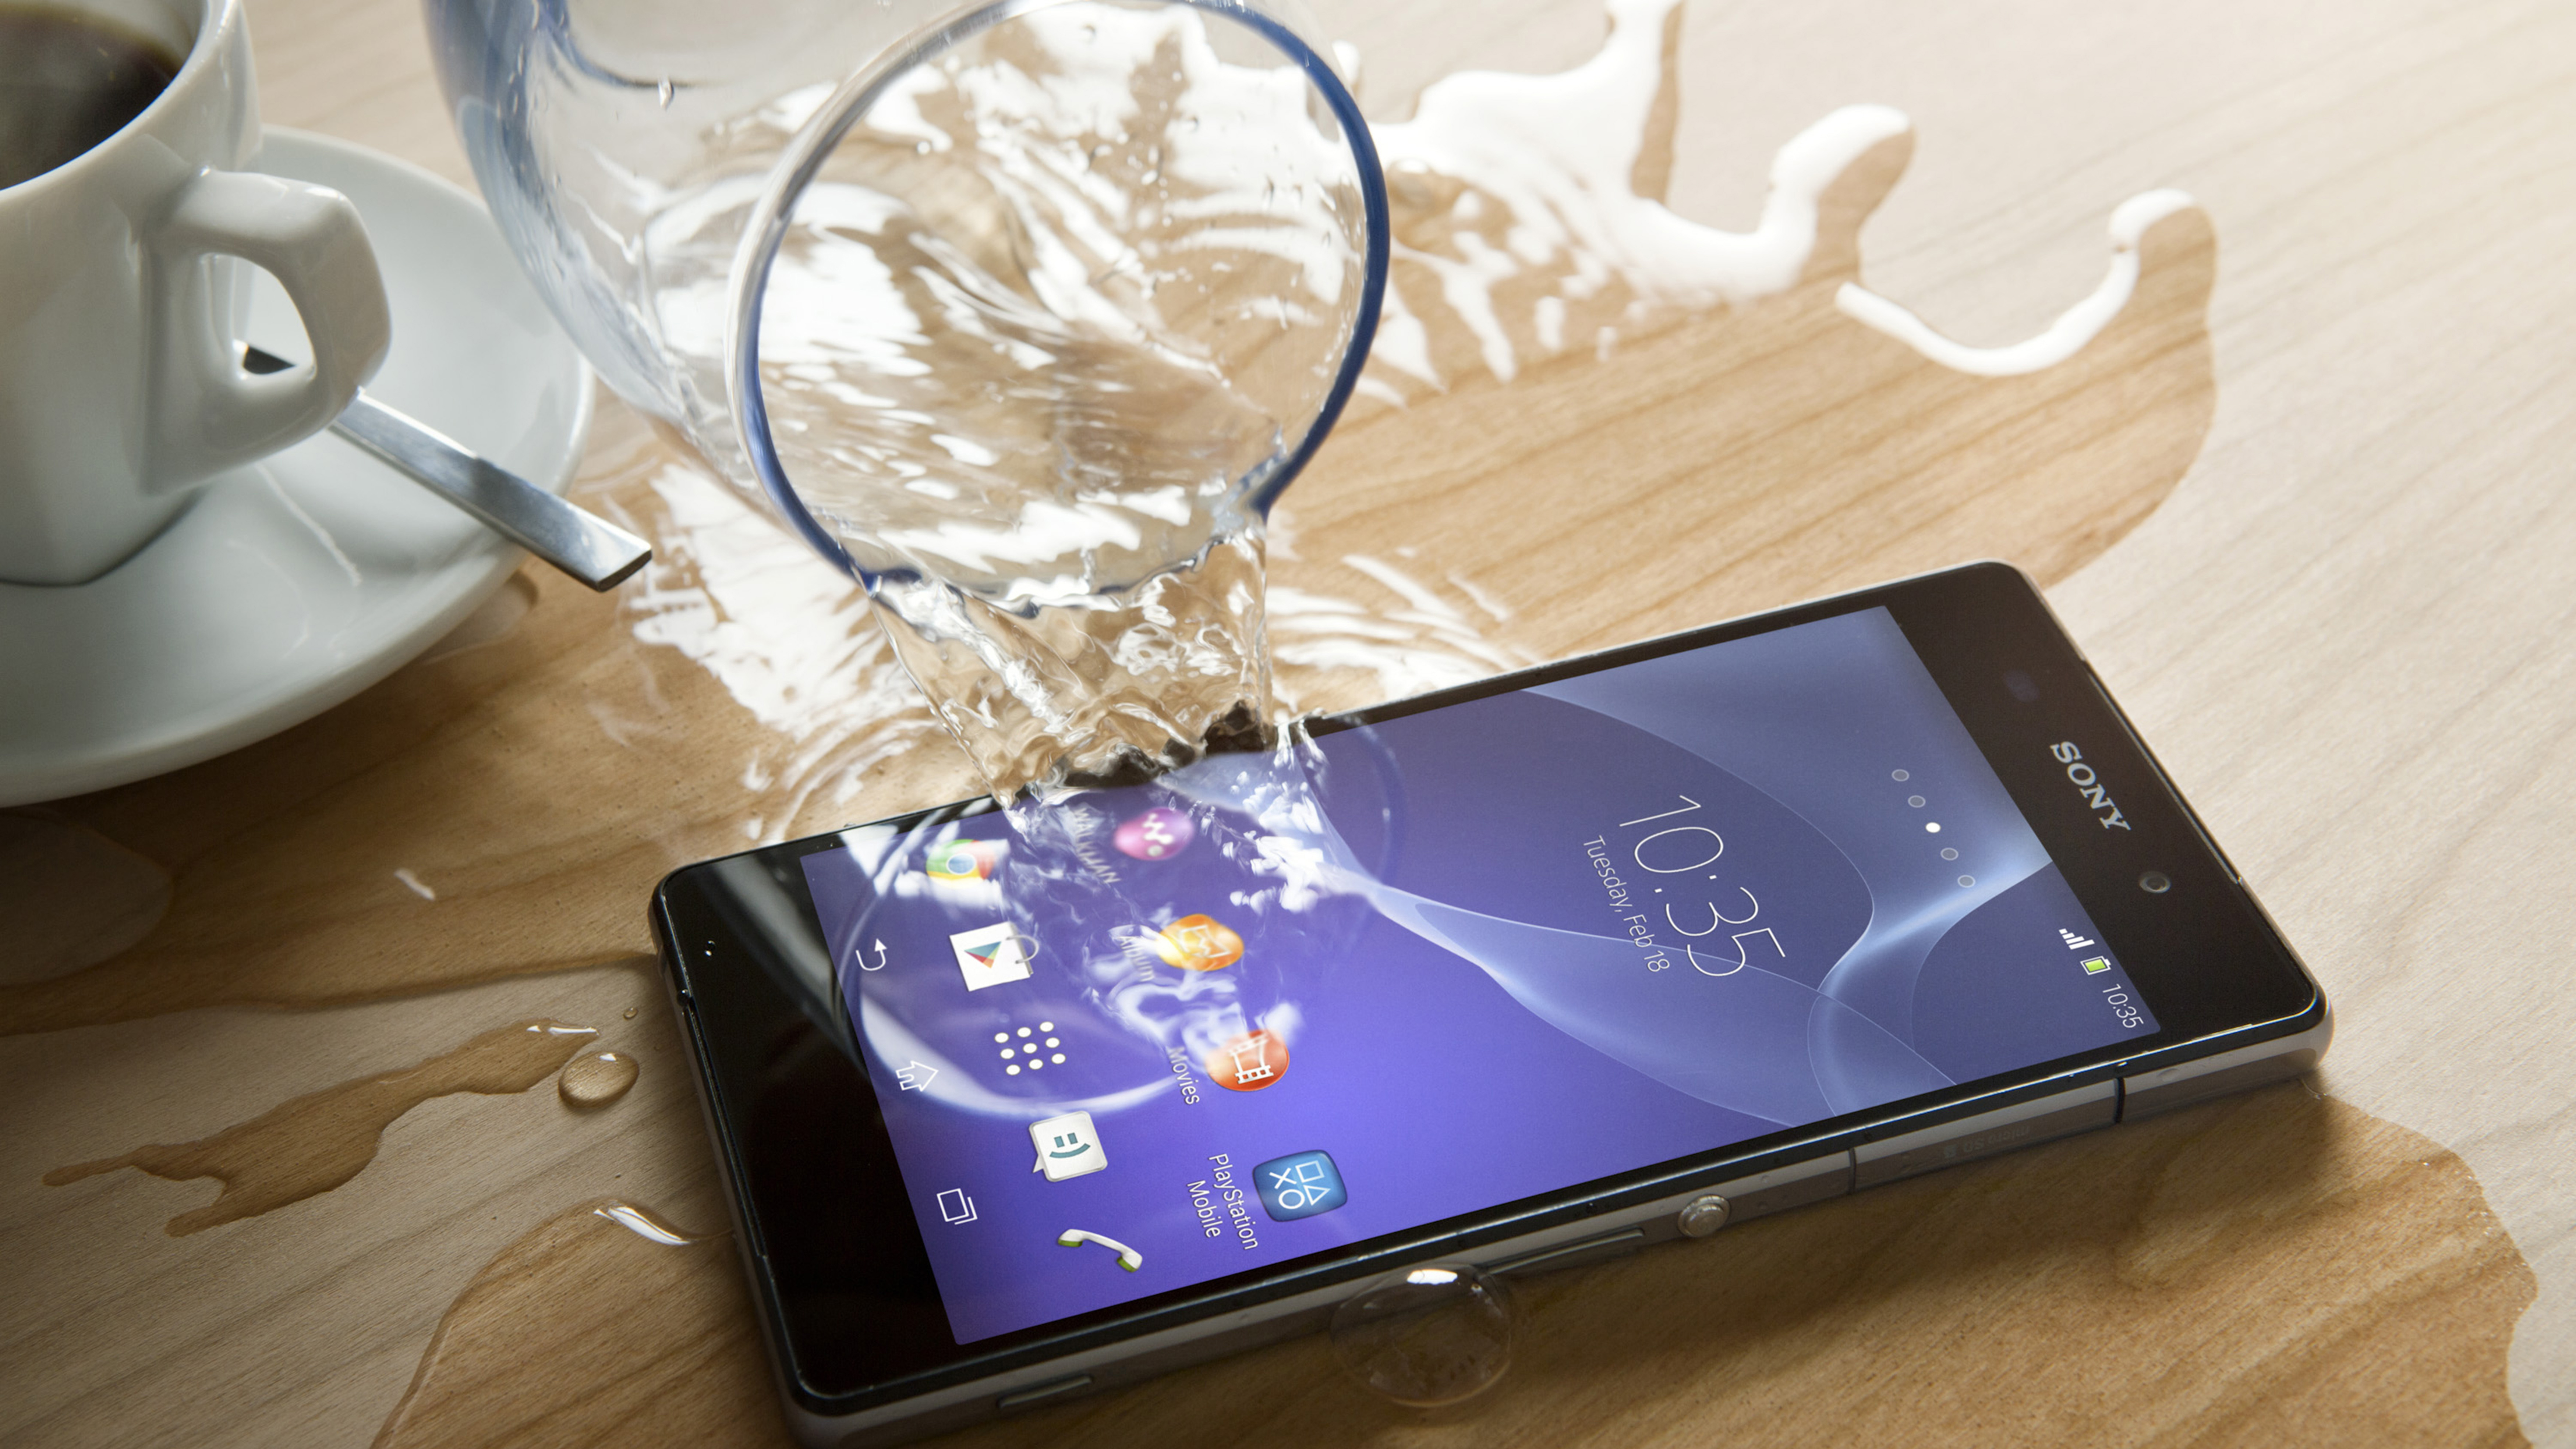 official photos 3a8c5 e4b73 Sony Xperia Z2 review | TechRadar